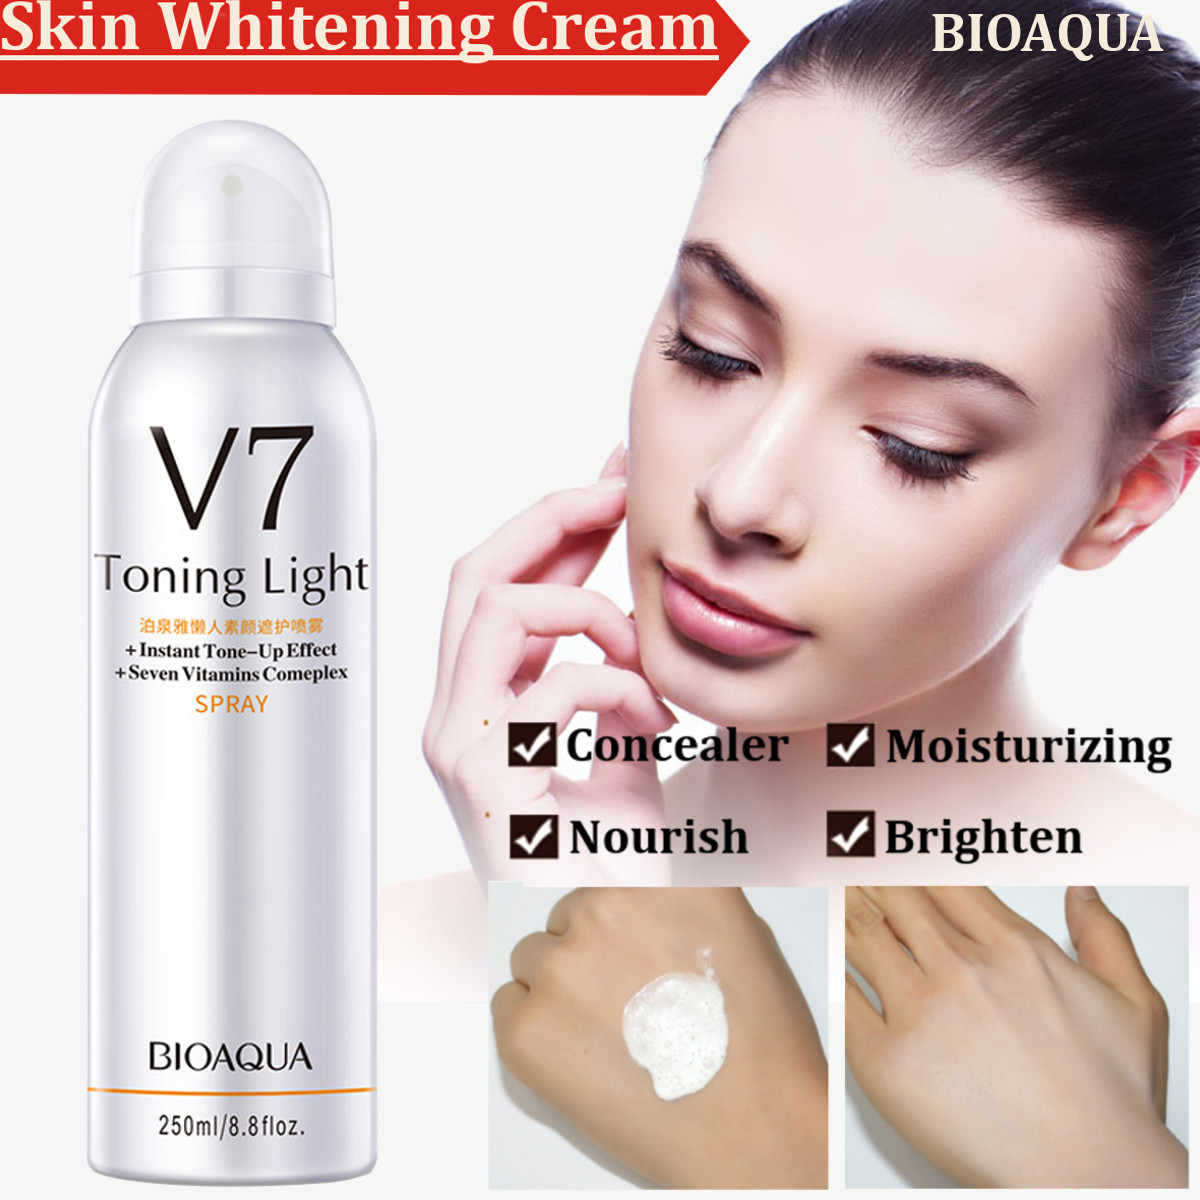 BIOAQUA Skin Whitening Cream 250ml